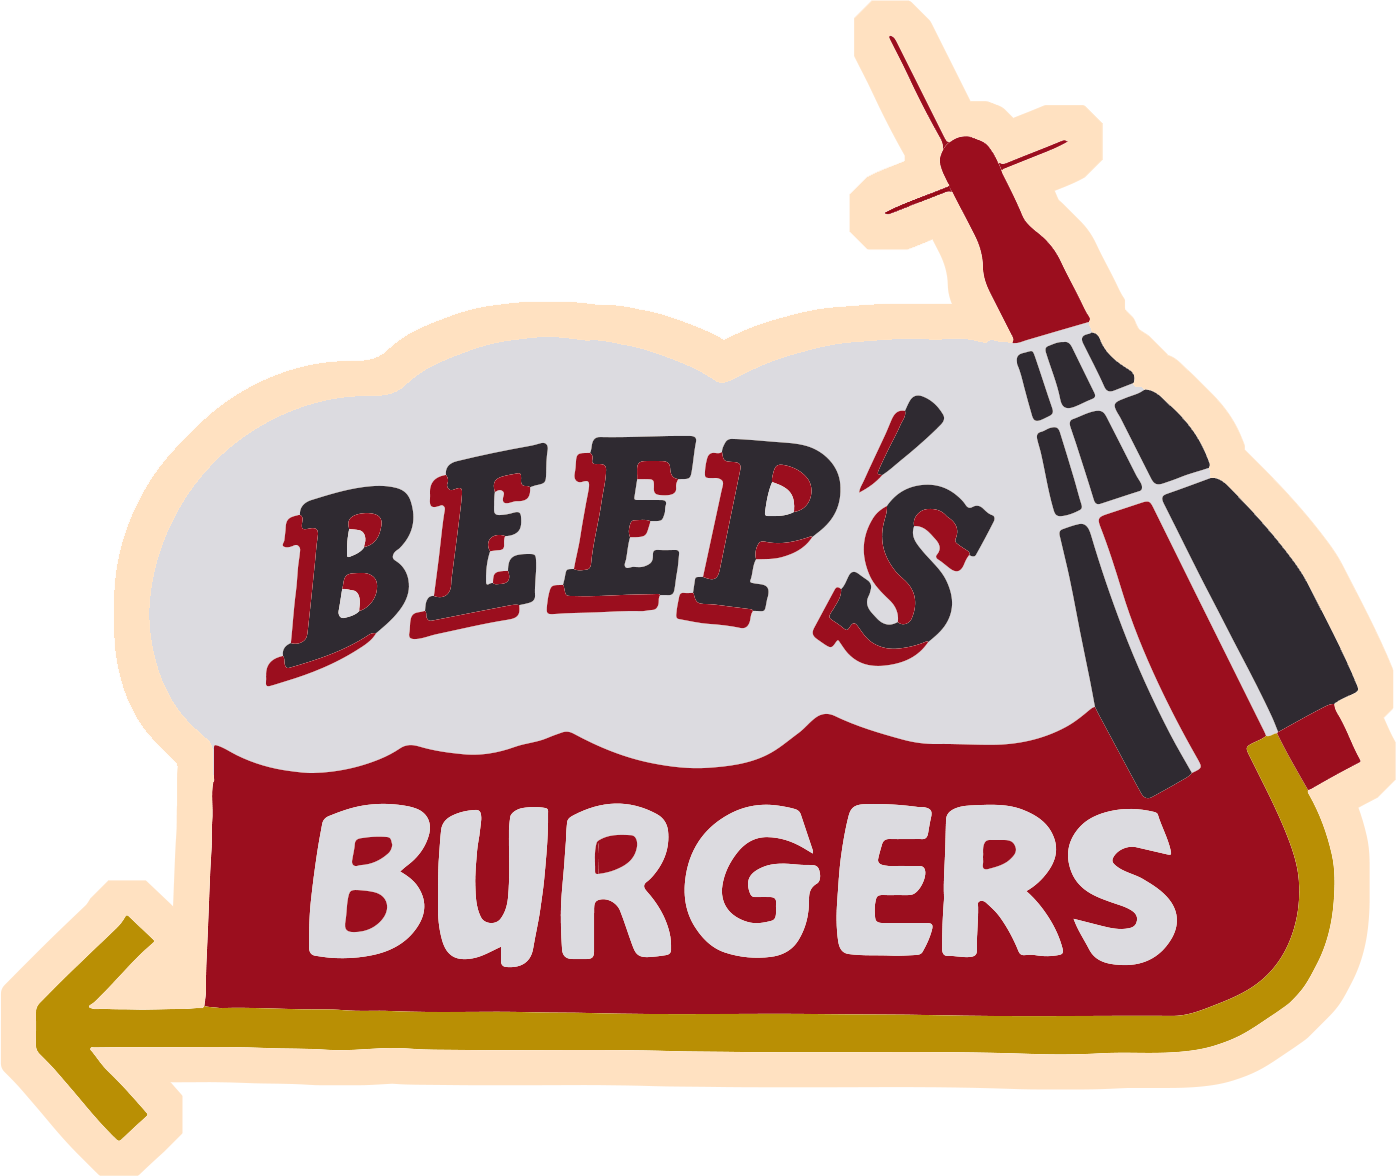 Hot dog chips soda clipart graphic download Beep's Burgers graphic download